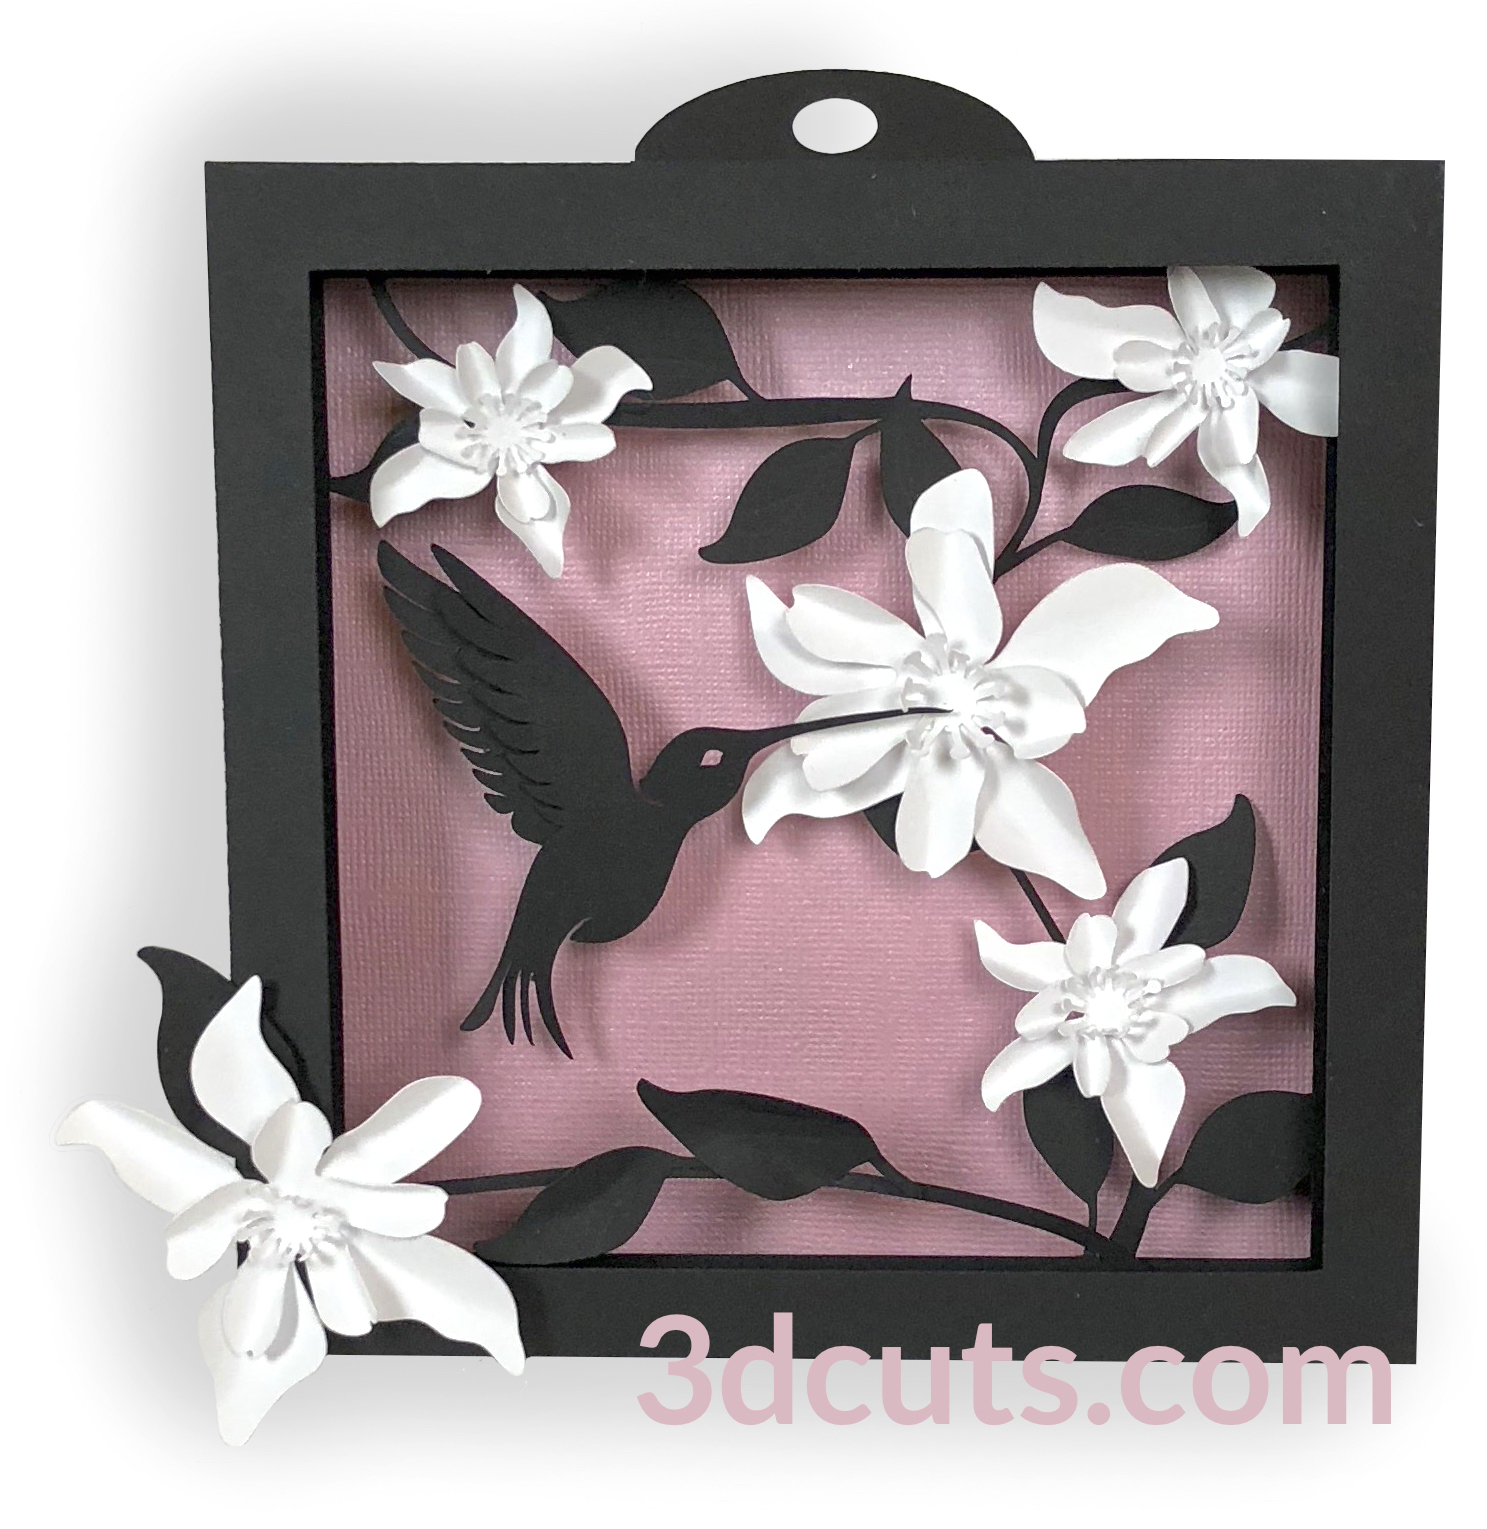 Hummingbird Shadow Box by 3dCuts.com, by Marji Roy, Cutting files in .svg, .dxf, png and .pdf formats for use with Silhouette, Cricut and Brother cutting machines, paper crafting files, SVG Files